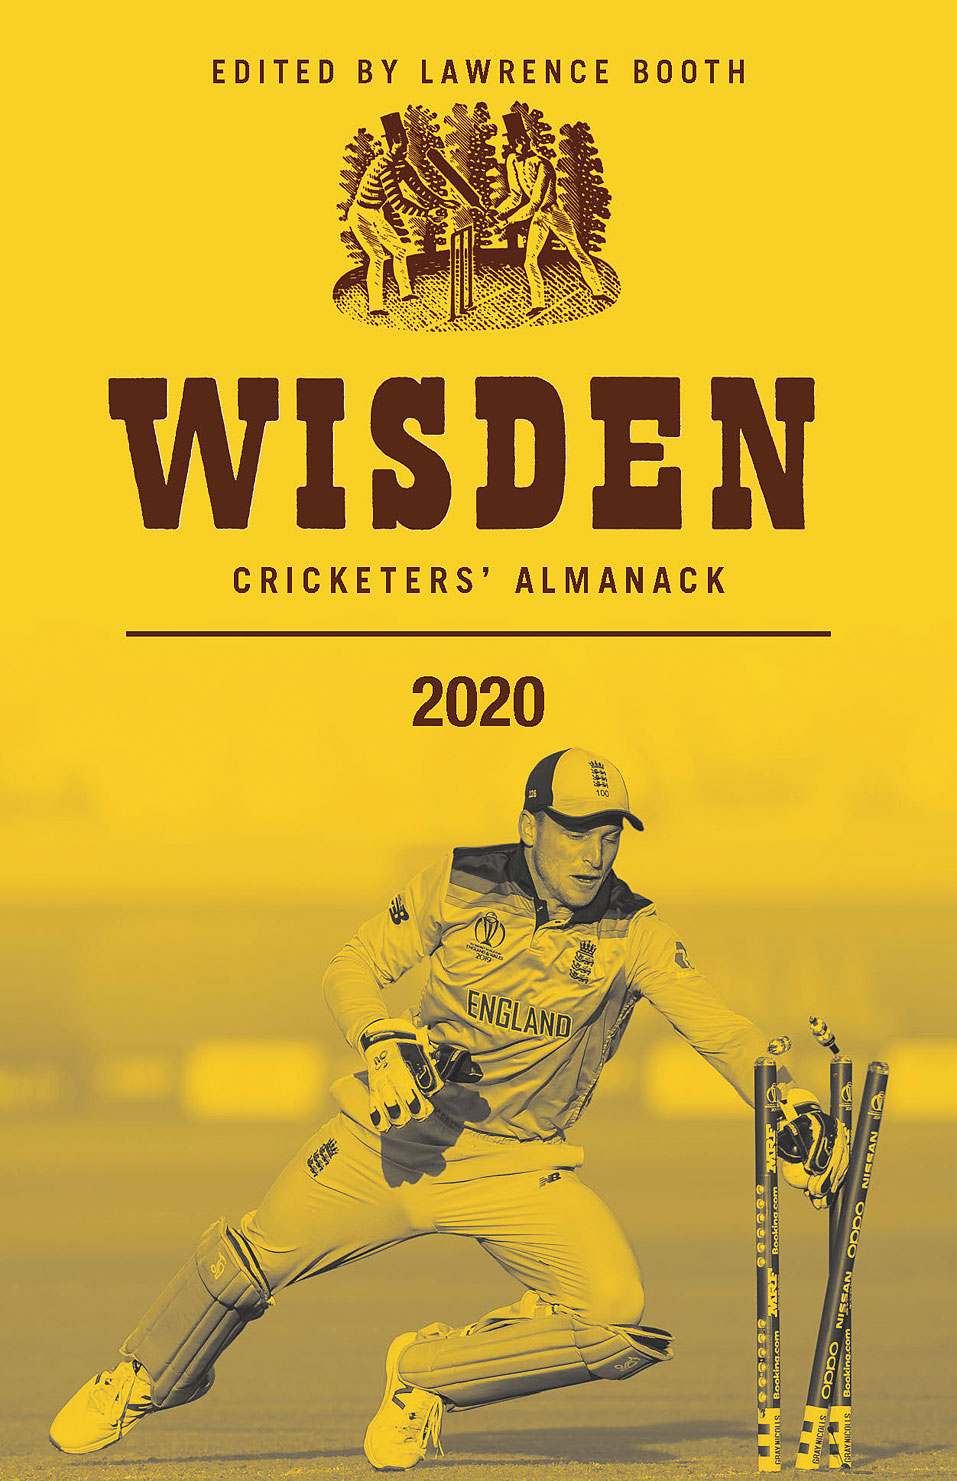 Wisden's cover depicts the moment of England's World Cup victory — Jos Buttler completing the run out